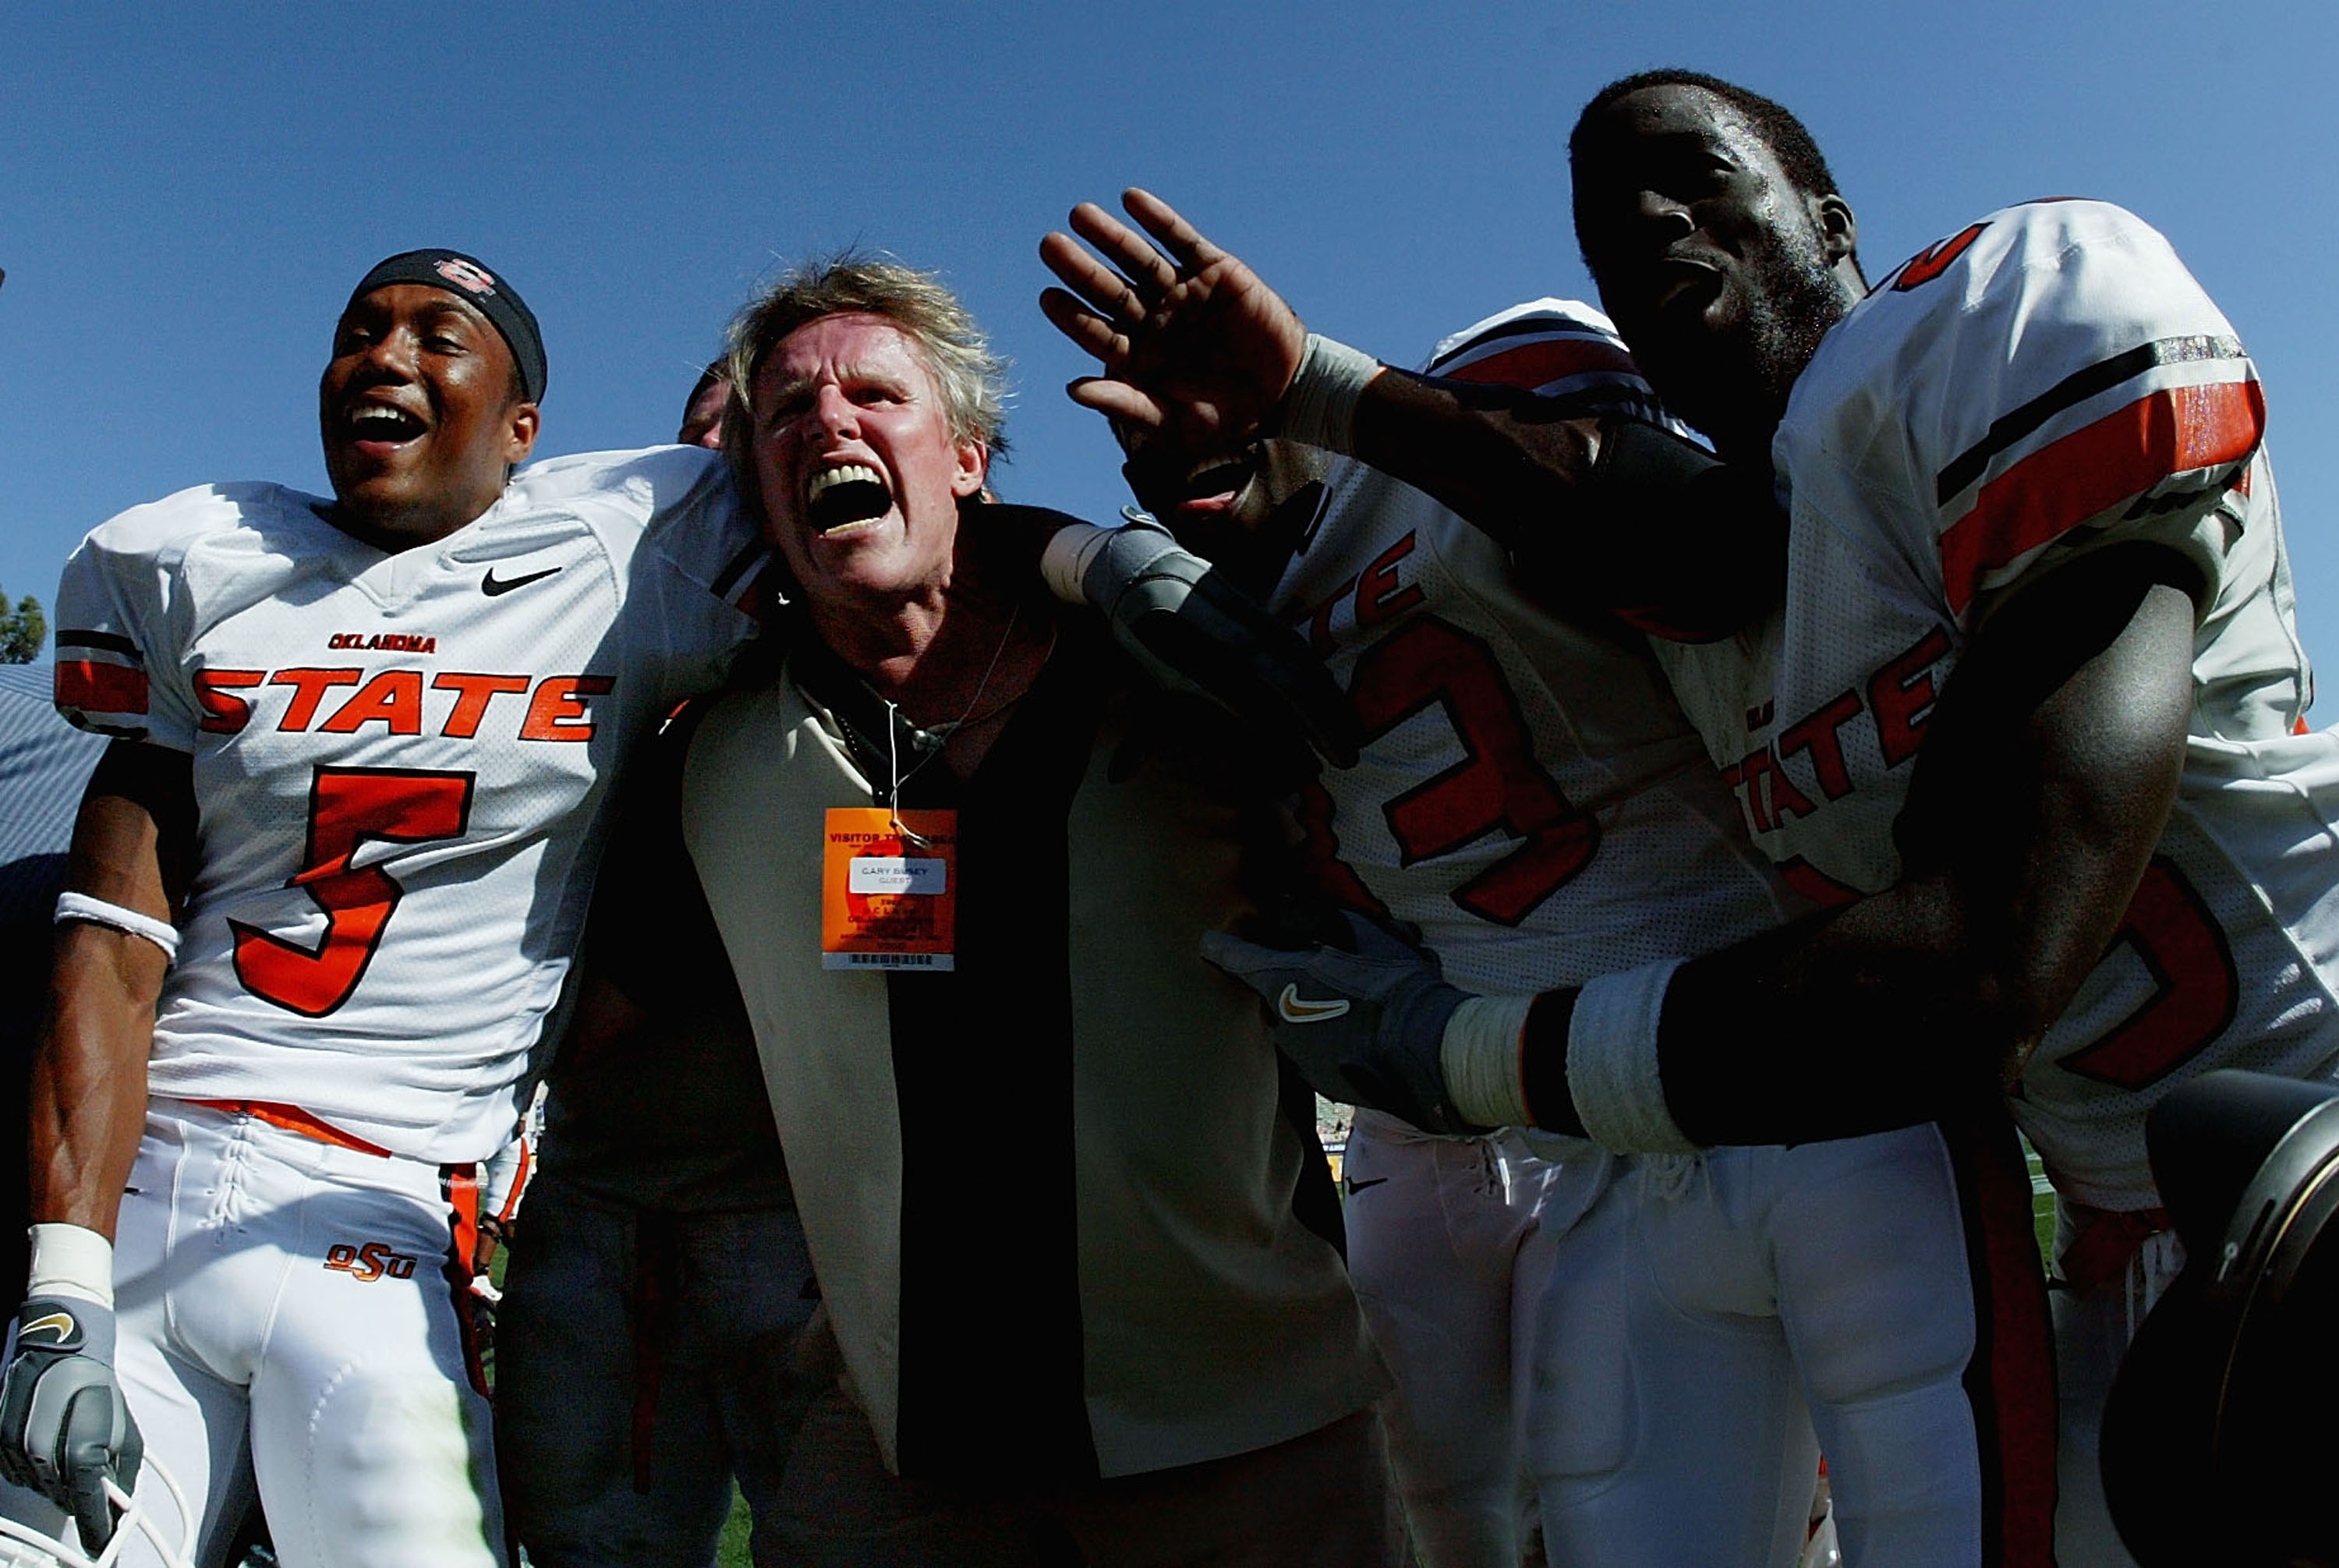 PASADENA, CA - SEPTEMBER 4:  Actor Gary Busey celebrates with victory with cornerback Ricky Coxeff #5 and wide receiver Chijuan Mack #83 of the Oklahoma State Cowboys and other teammates after defeating the UCLA Bruins on September 4, 2004 at the Rose Bow